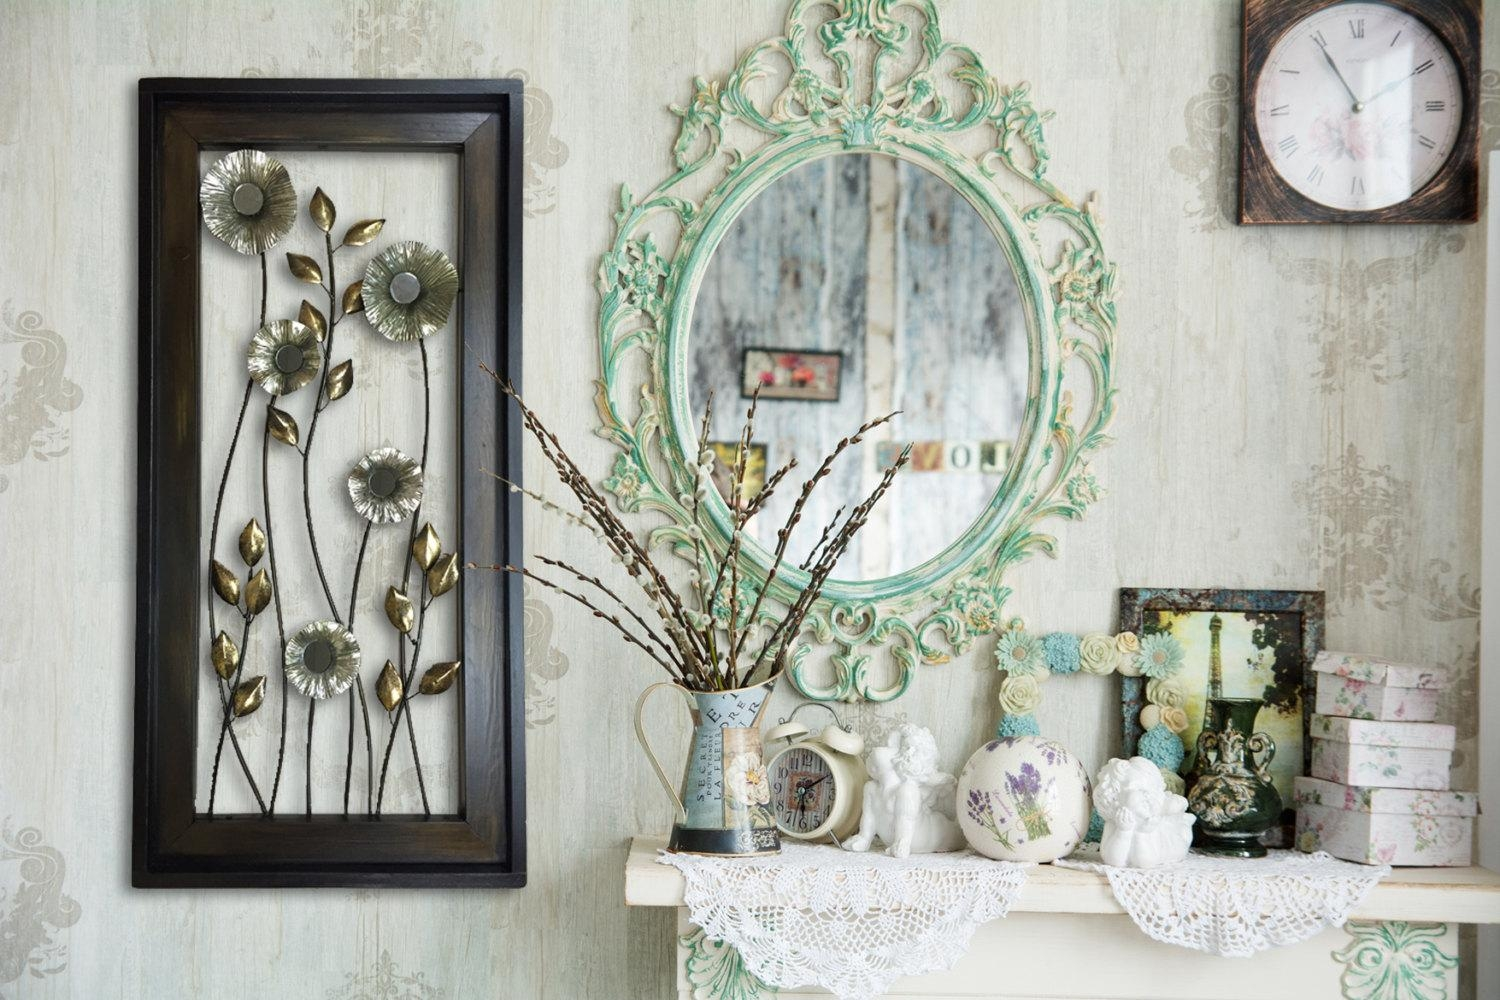 Metal Wall Art Wood Framed Flowers Mirrors Home Decor Large Pertaining To Copper Wall Art Home Decor (View 9 of 20)